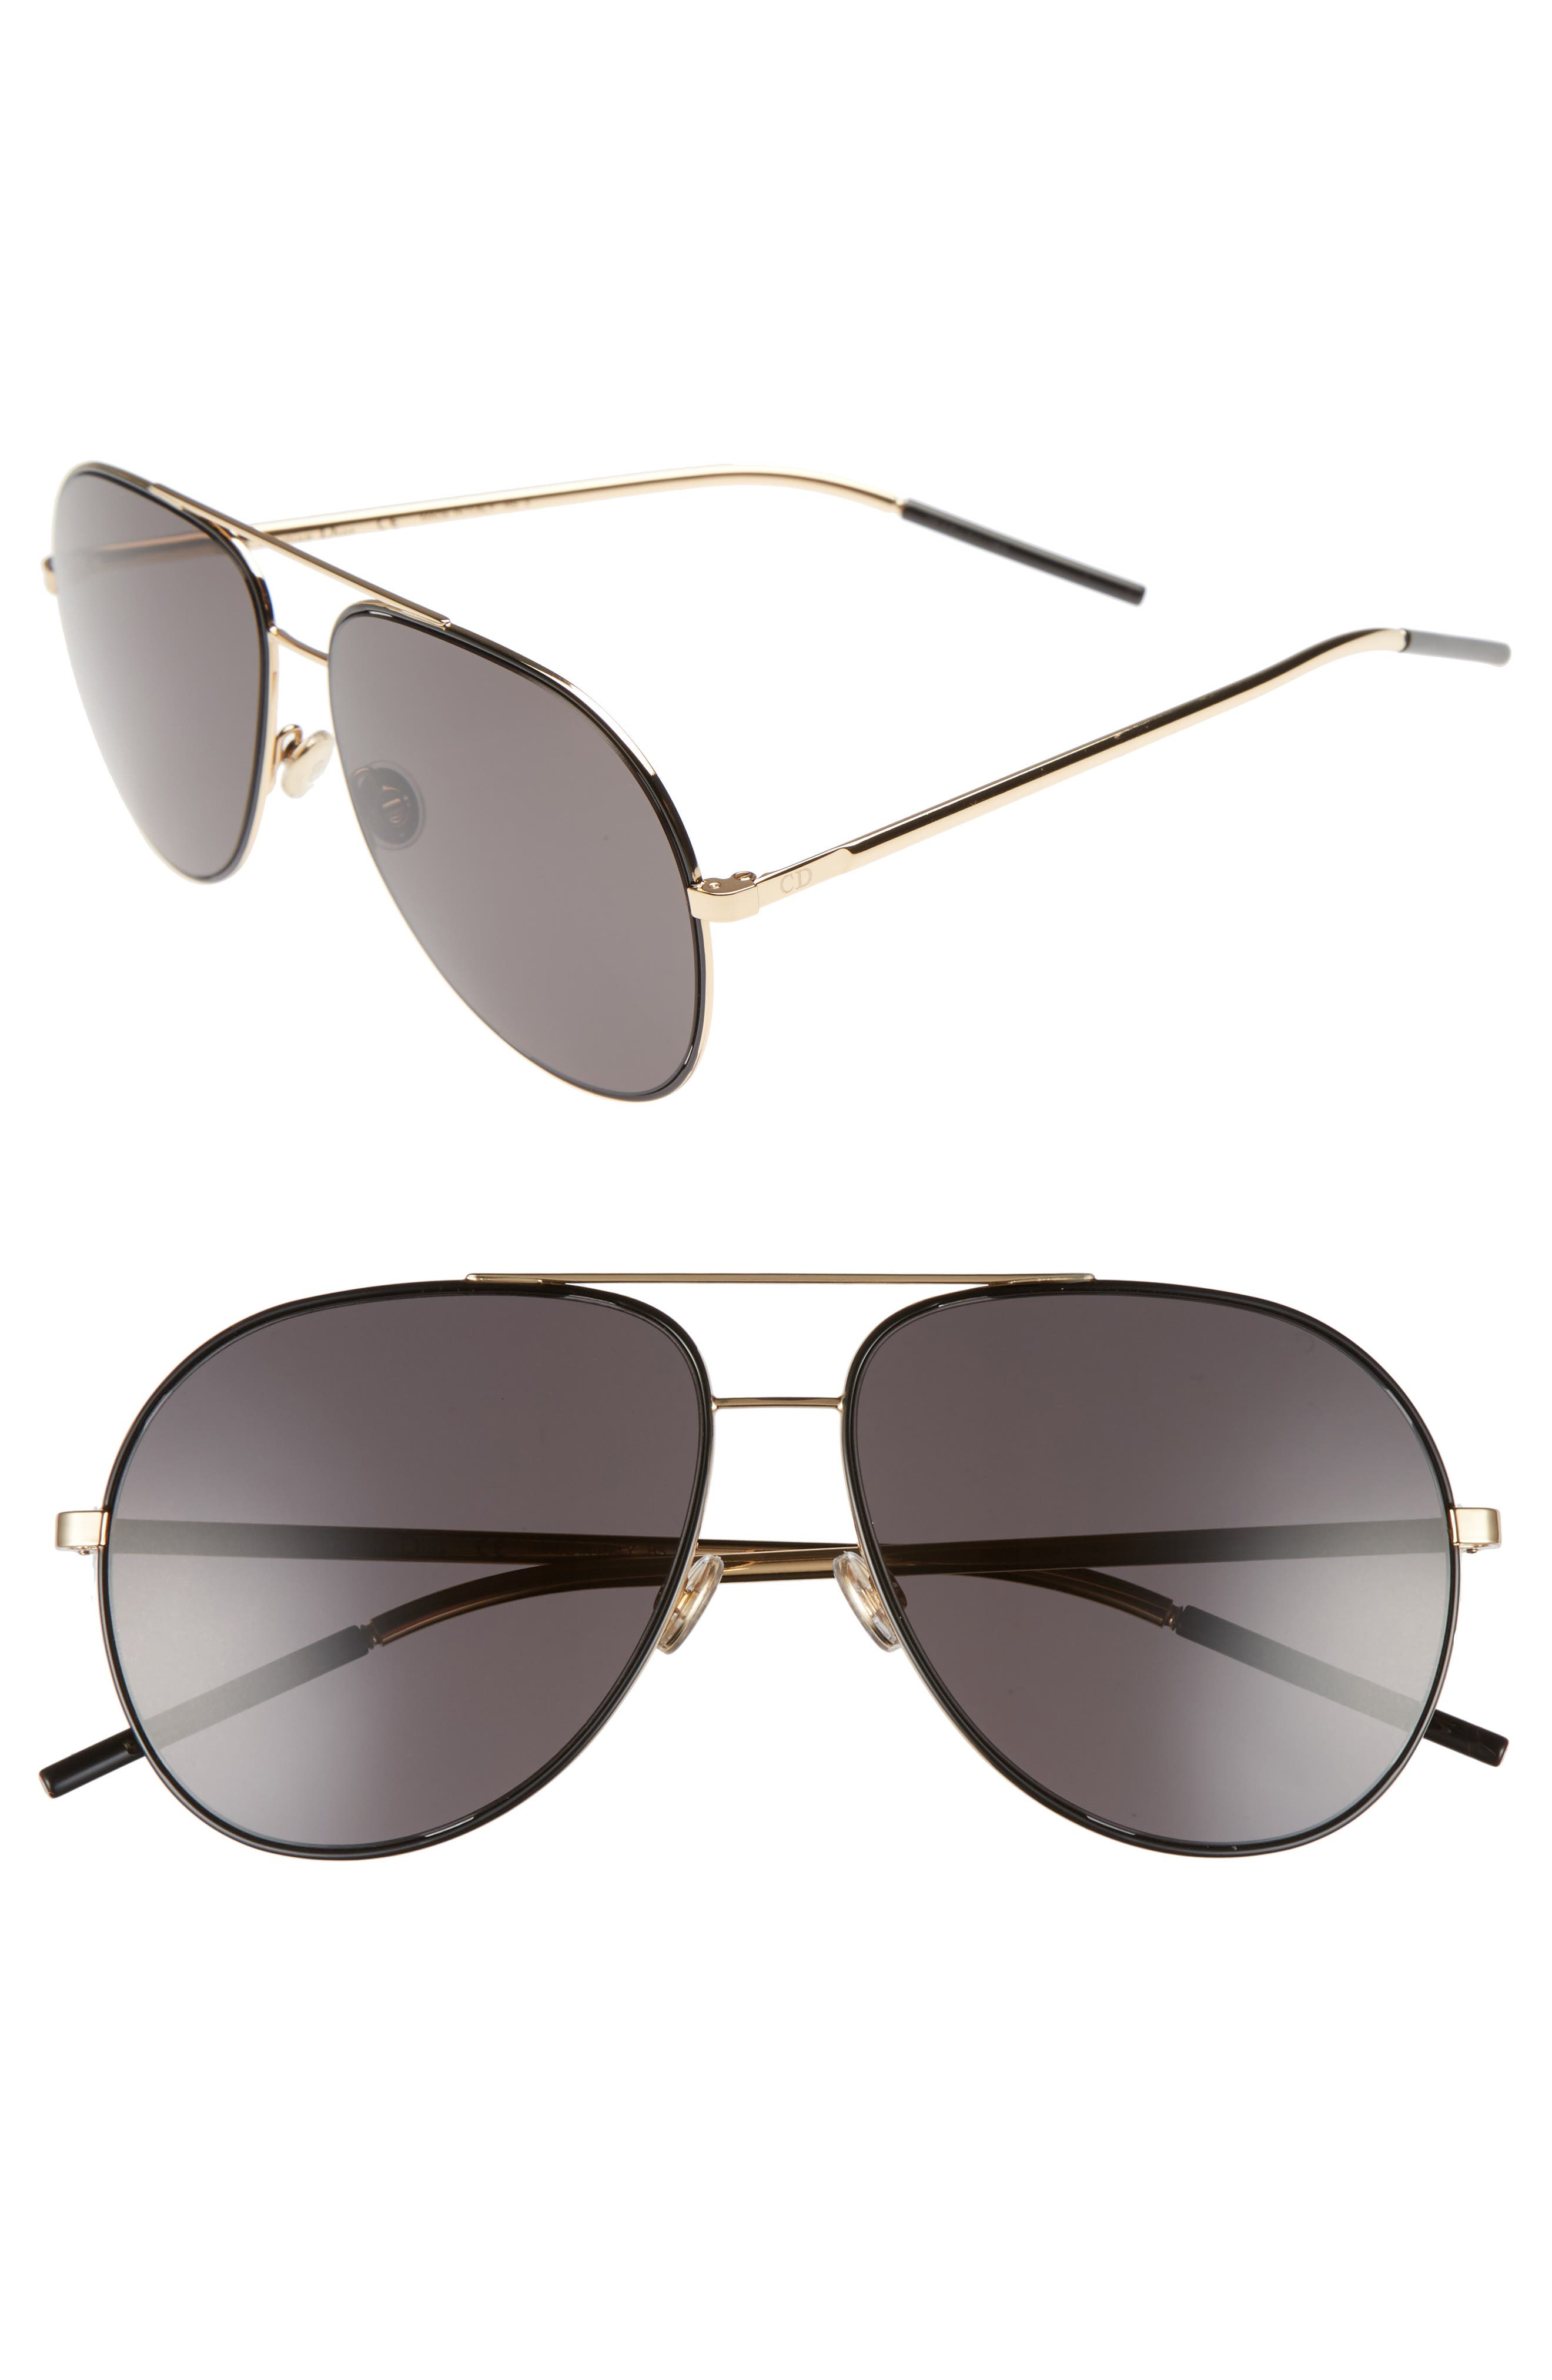 Astrals 59mm Aviator Sunglasses,                             Main thumbnail 1, color,                             001